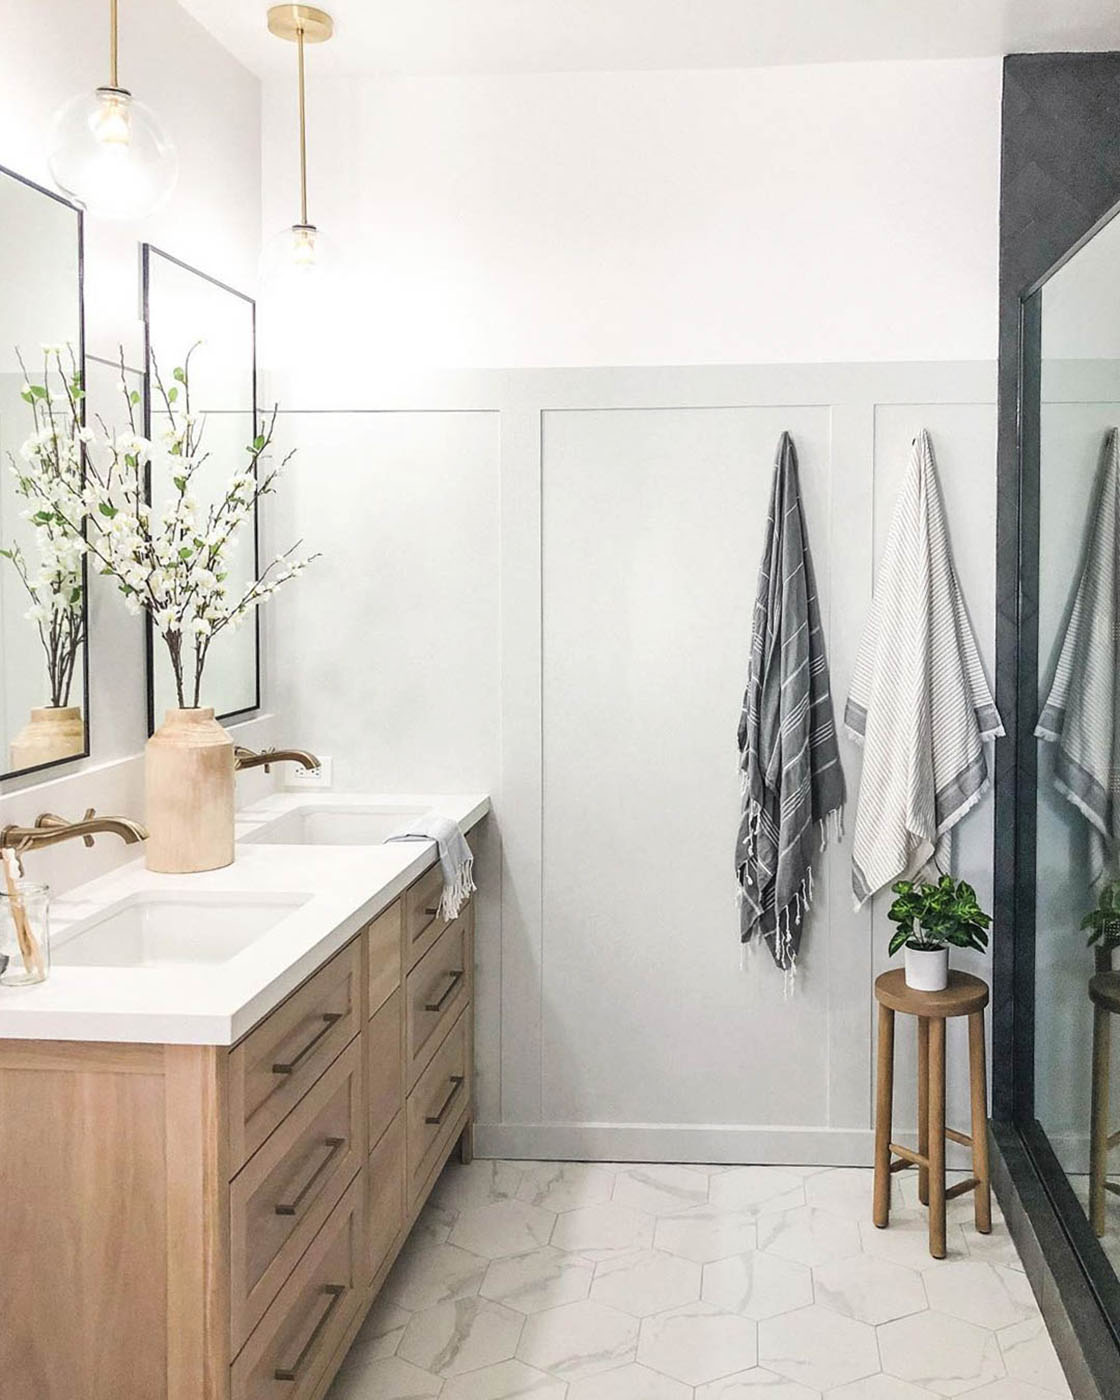 A fresh coat of light greige paint — Penthouse by Clare — plus a restructured layout and a gorgeous black shower took this bathroom from dated to elevated.